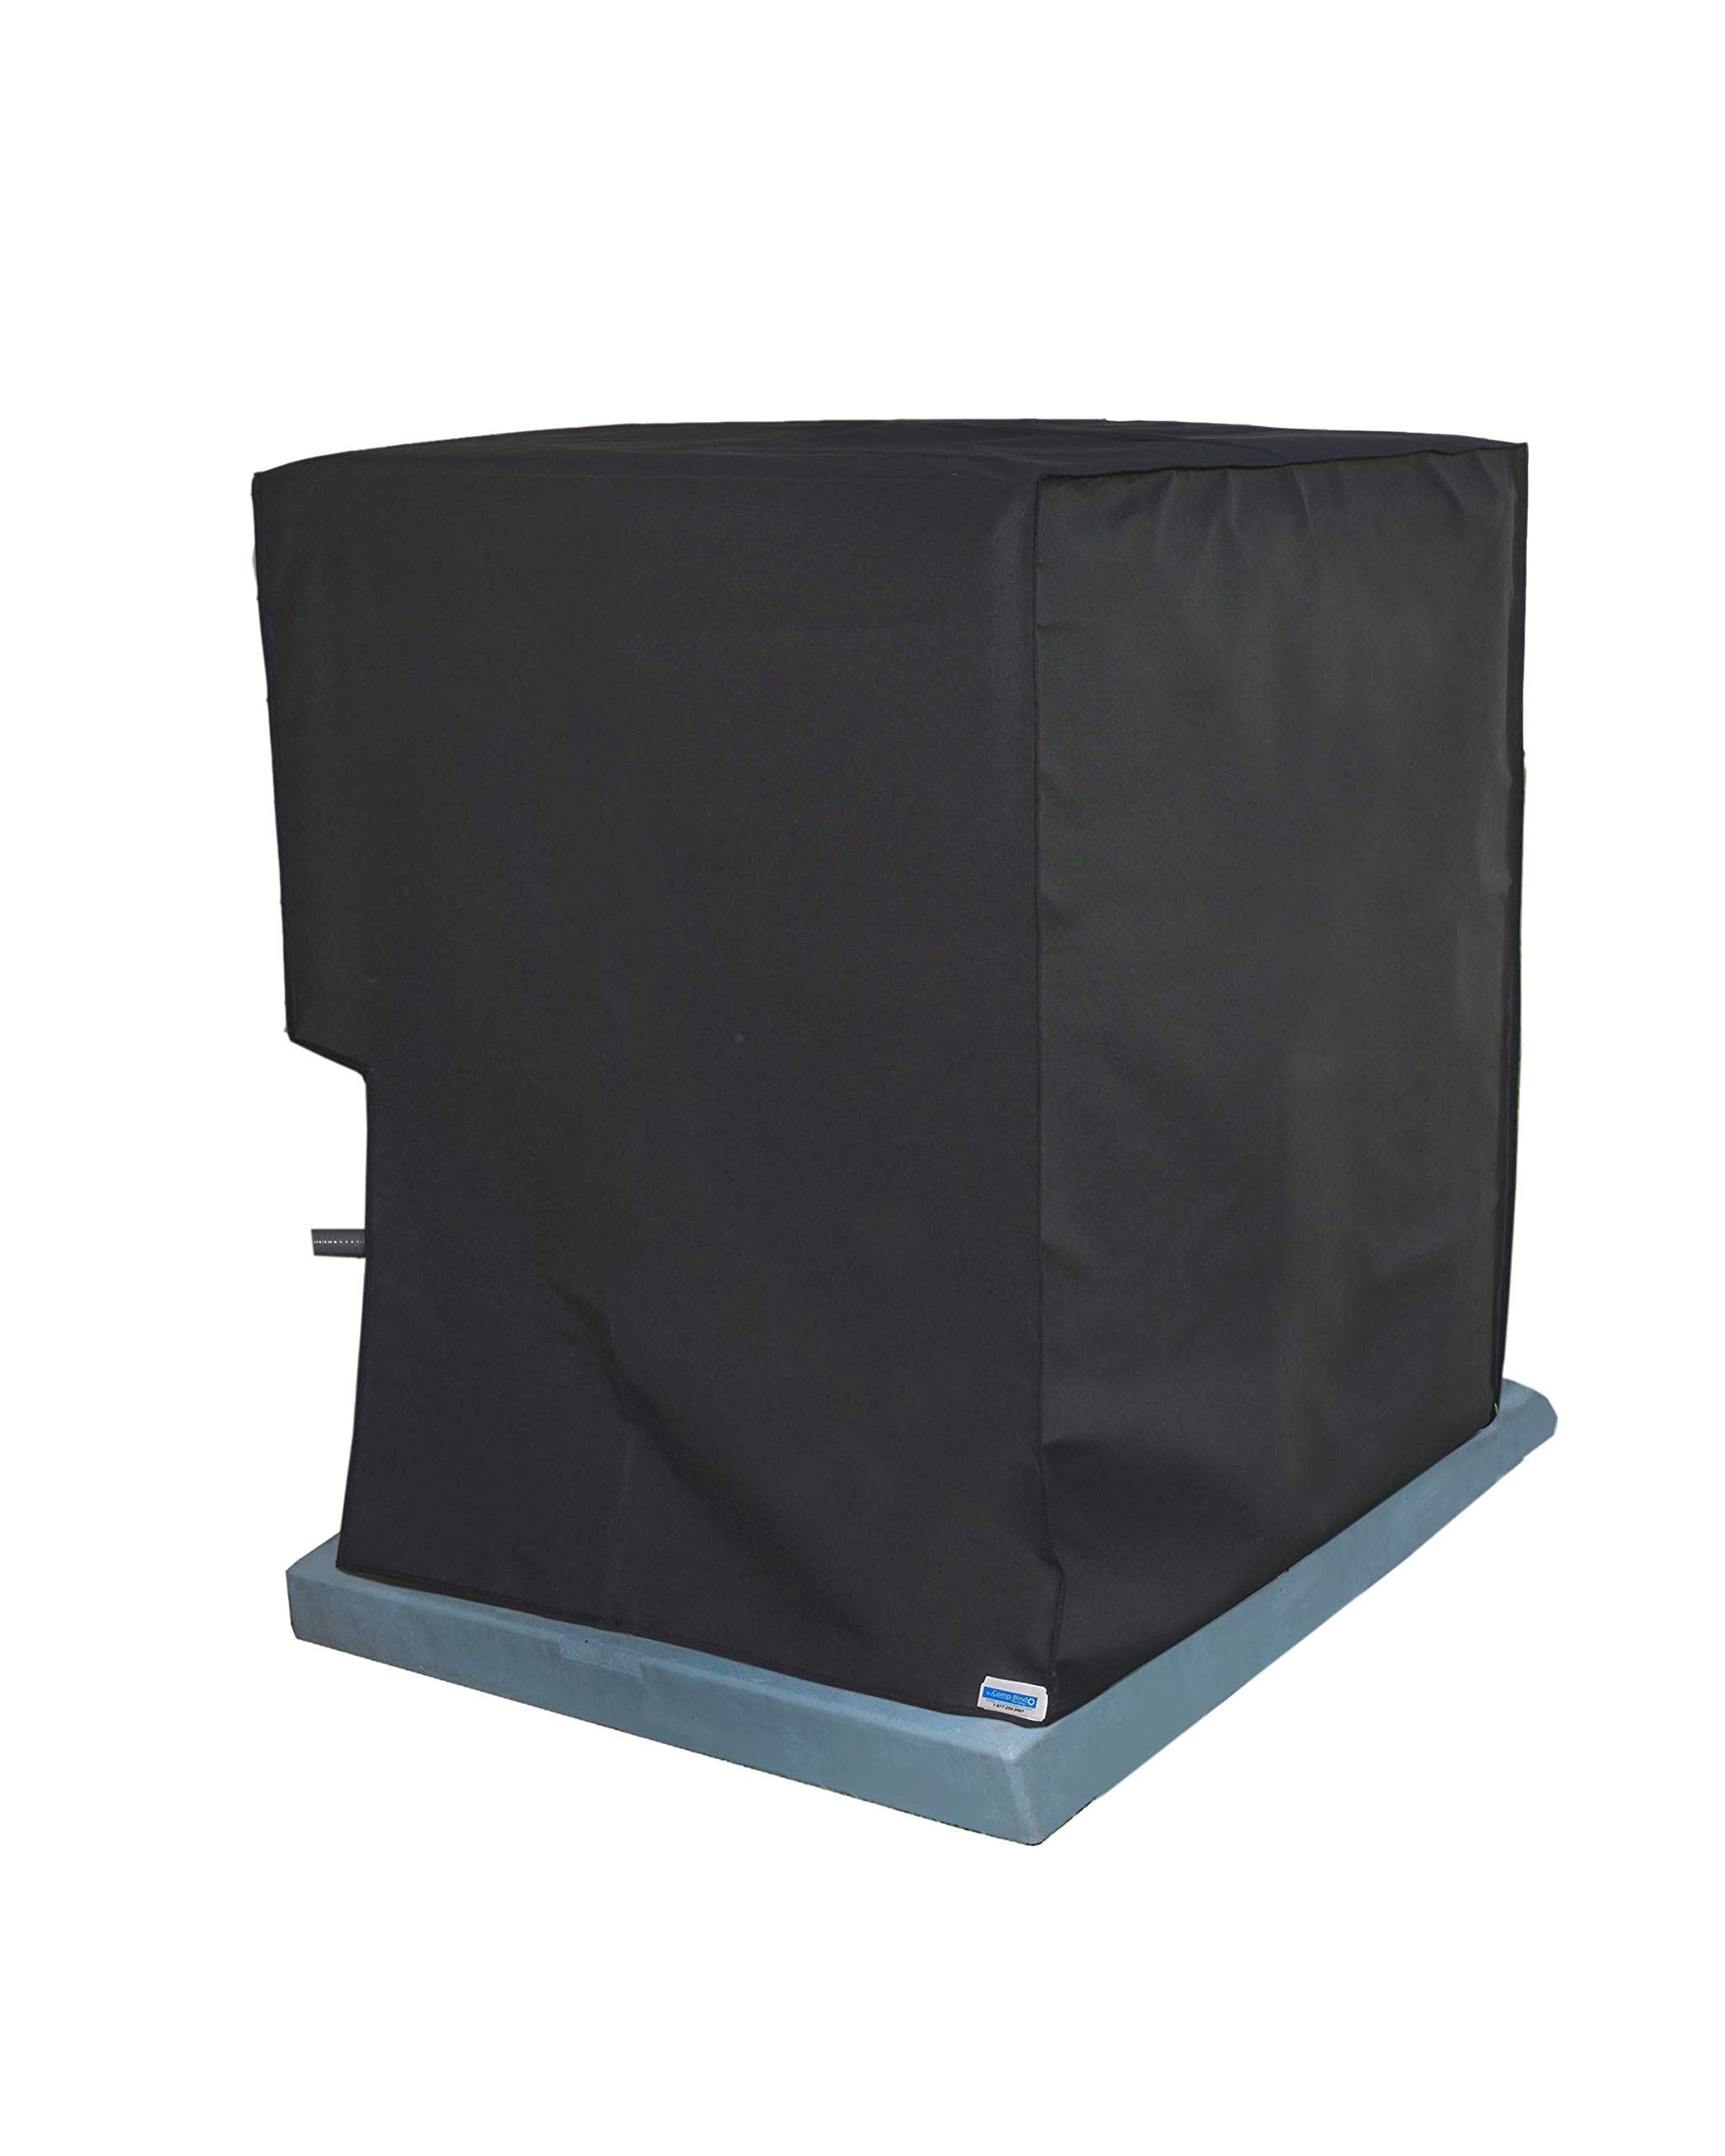 Comp-Bind Technology Waterproof Cover for Air Conditioning System Unit Lennox Merit Model 13ACX-024, Waterproof Black Nylon Cover Dimensions 24.5''W x 24.5''D x 25.5''H by Comp-Bind Technology